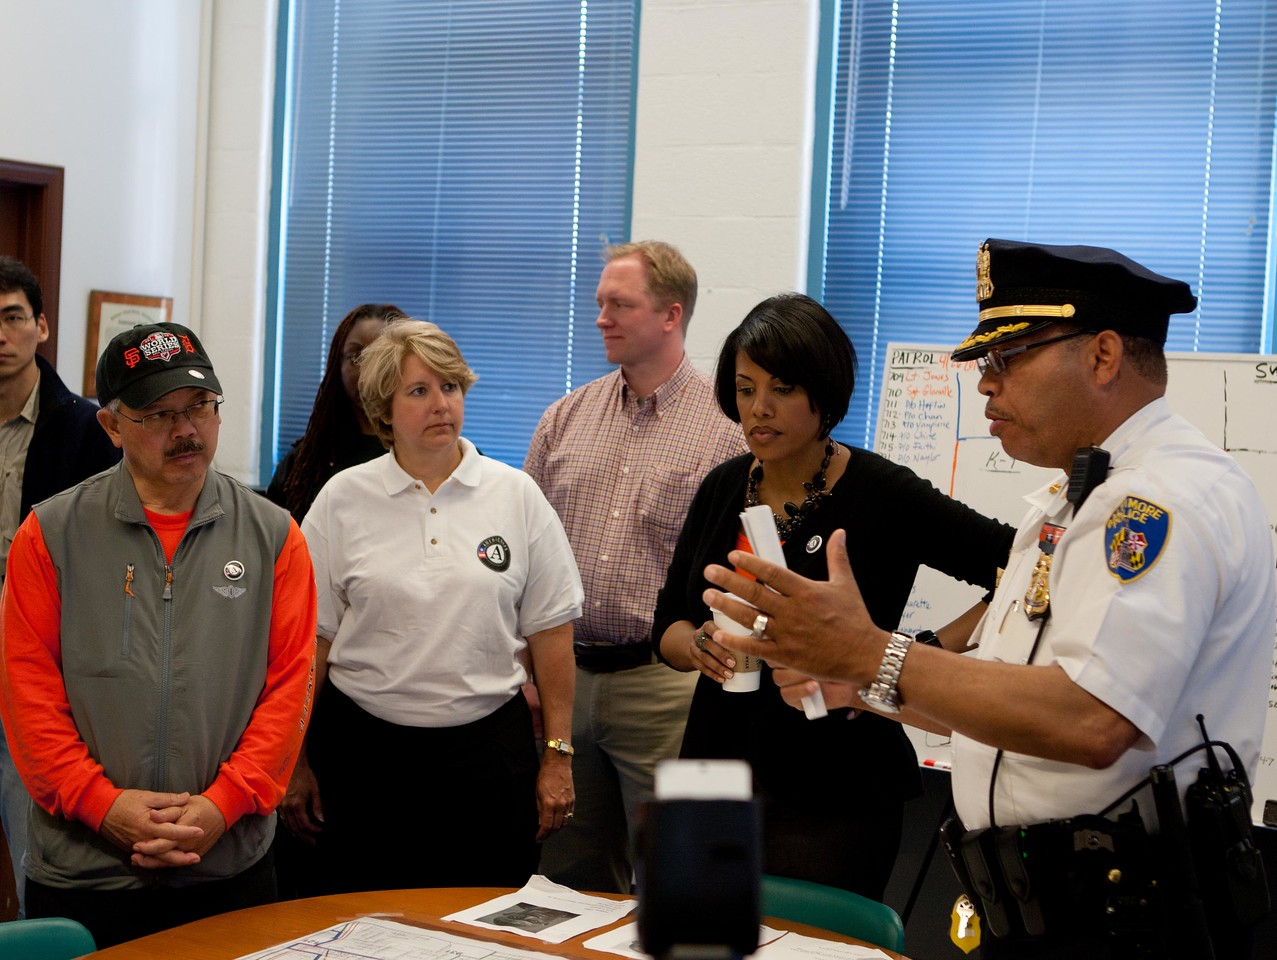 San Francisco Mayor Edwin M. Lee, CNCS CEO Wendy Spencer, and Baltimore Mayor Stephanie Rawlings-Blake with police officials at a West Baltimore Police precinct at the Service Bowl in Baltimore, MD. Corporation for National and Community Service Photo.